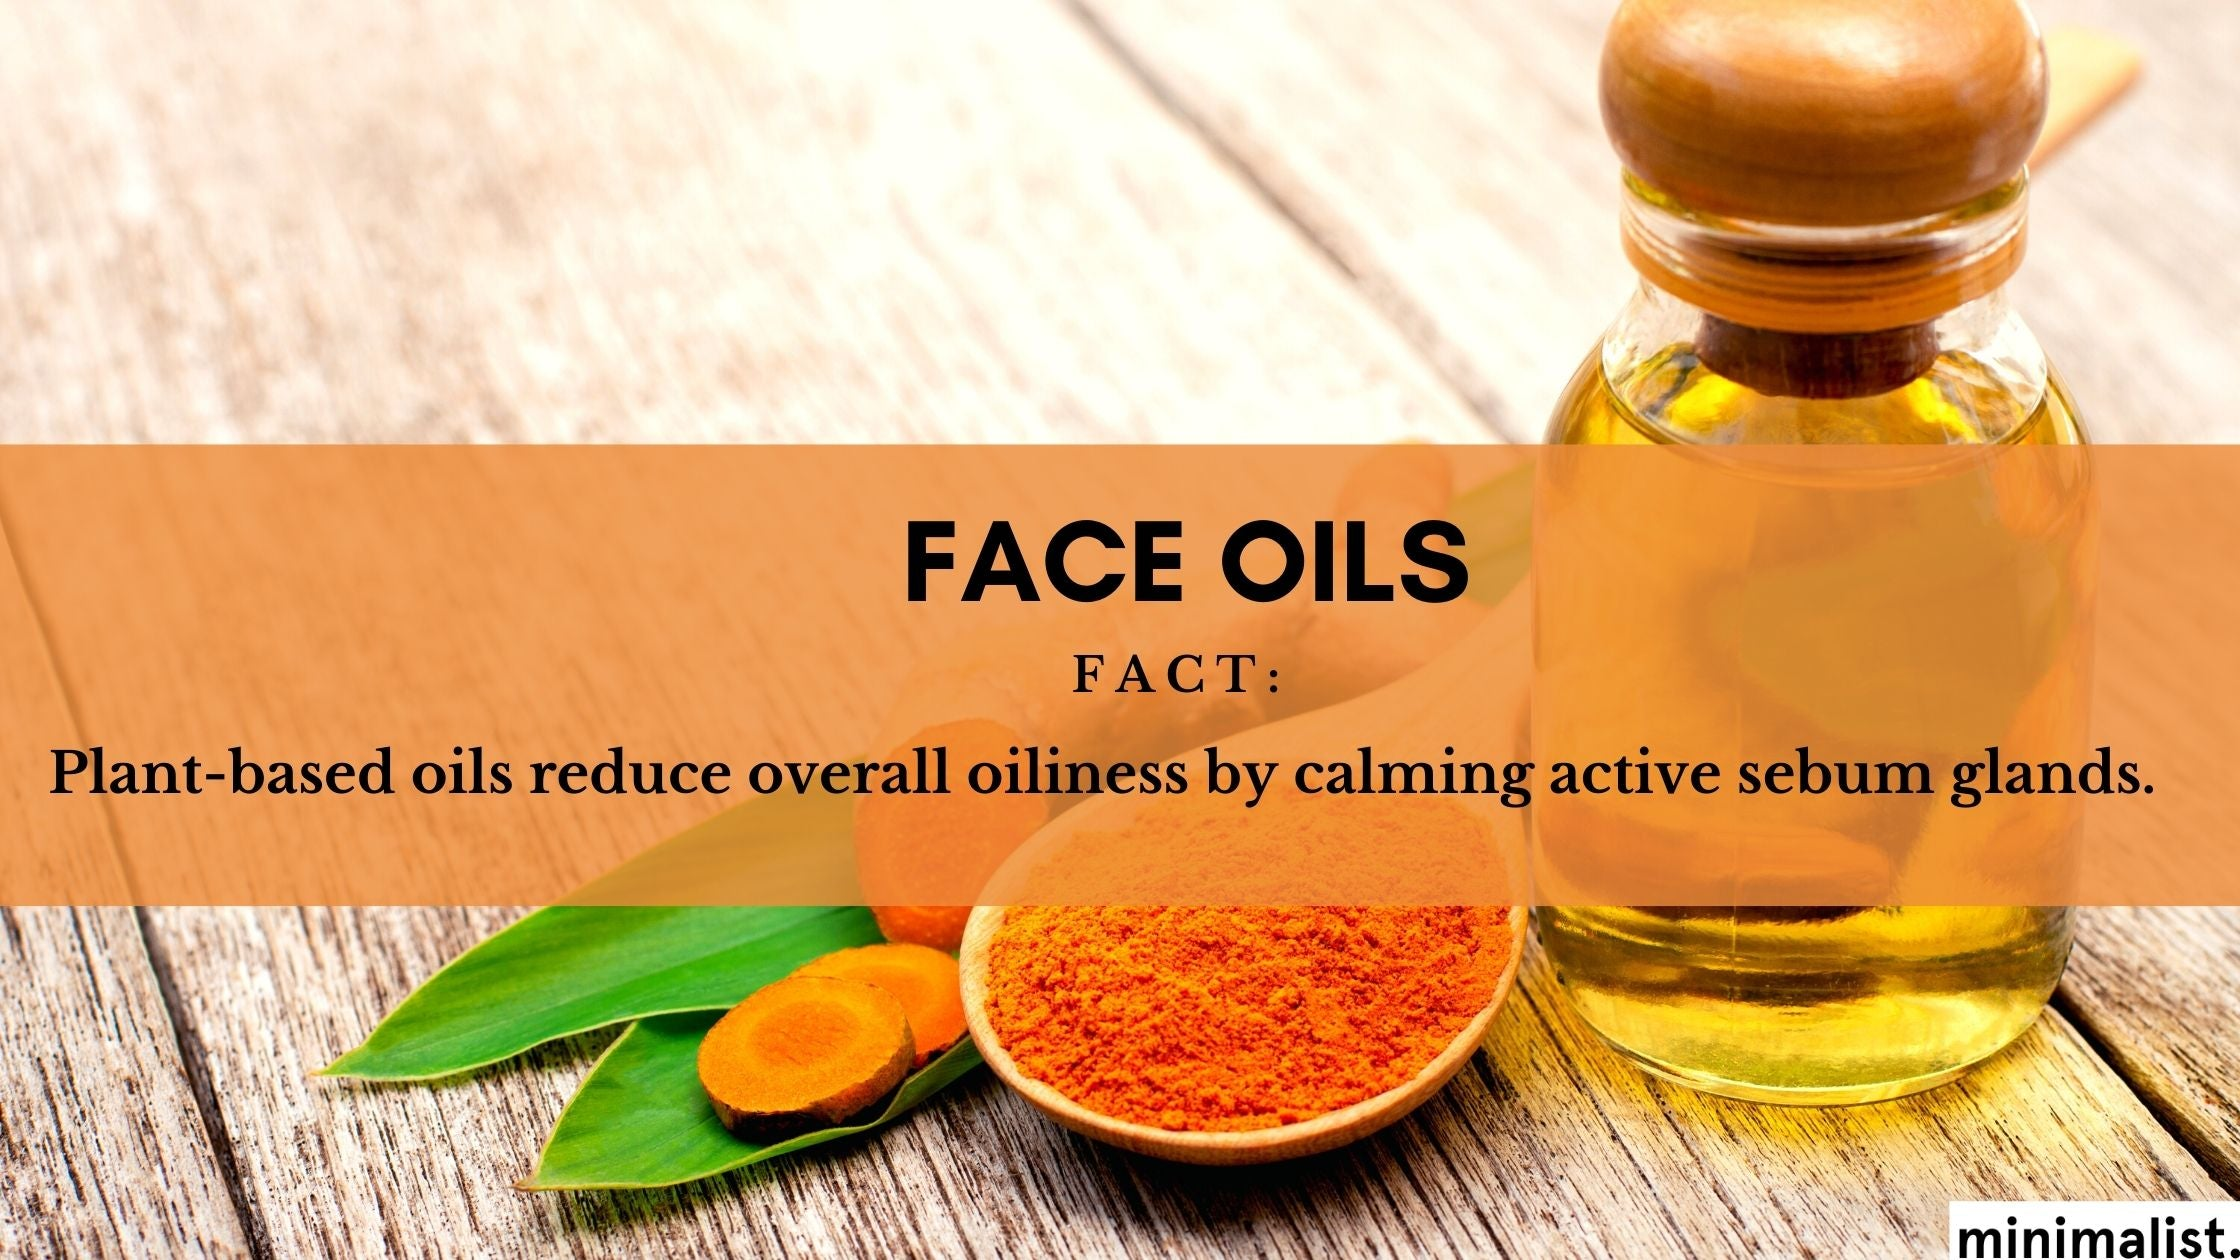 What are Face Oils?